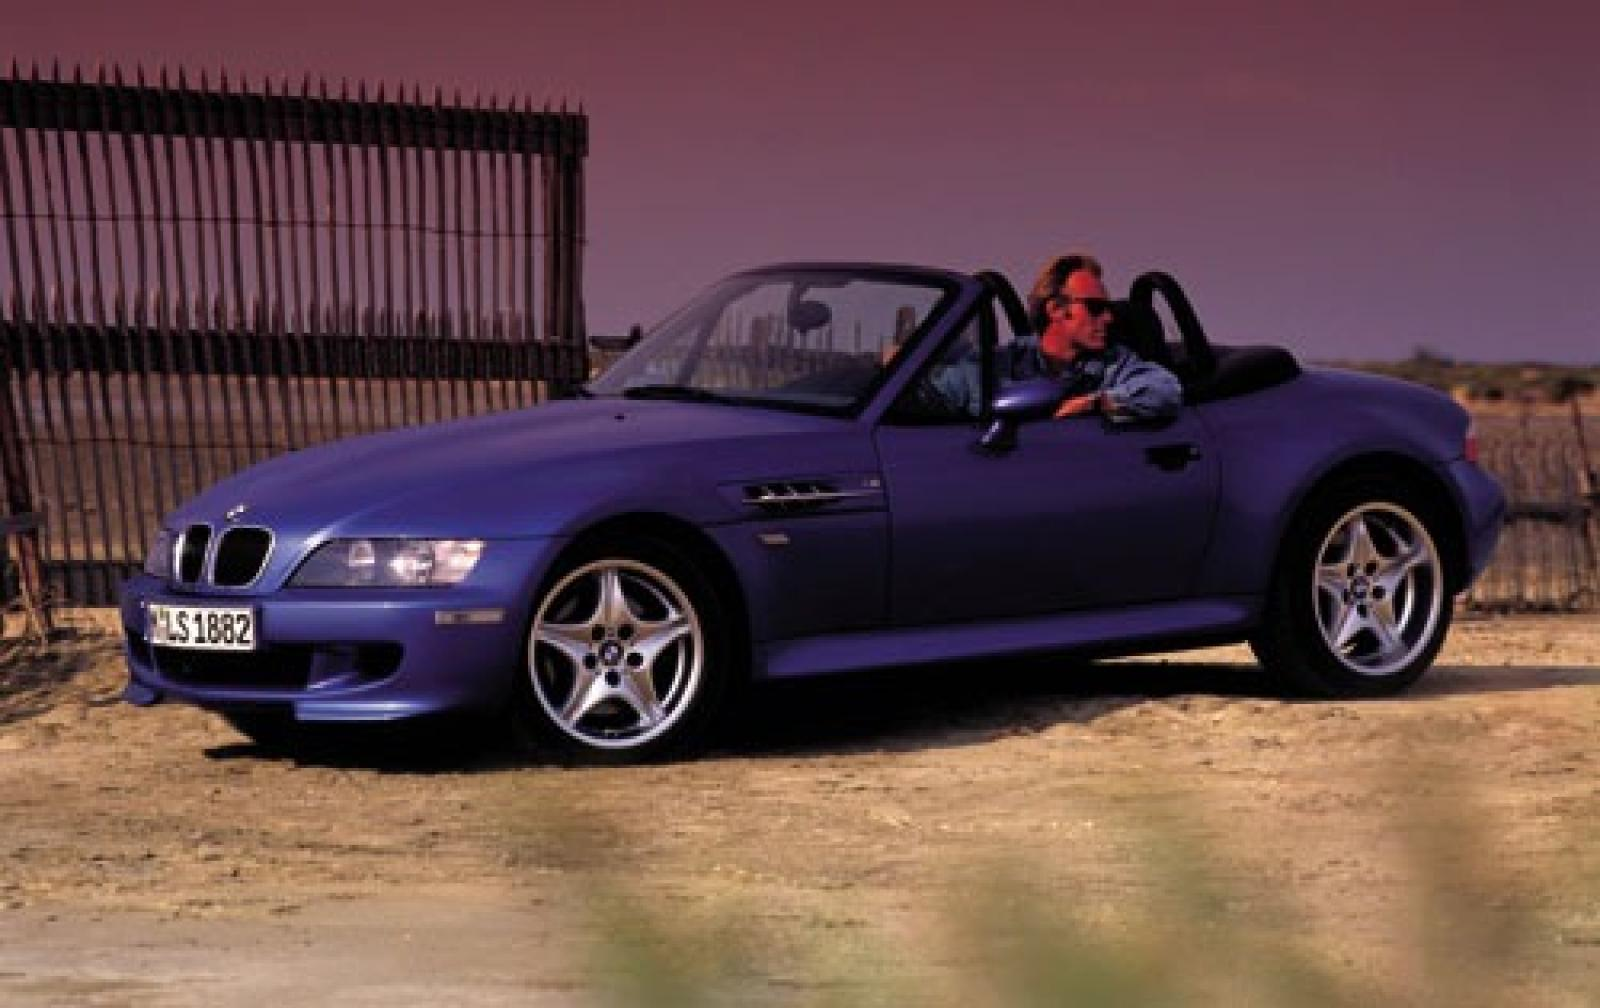 2002 Bmw M Information And Photos Zombiedrive Wiring Diagram 2000 Roadster 800 1024 1280 1600 Origin